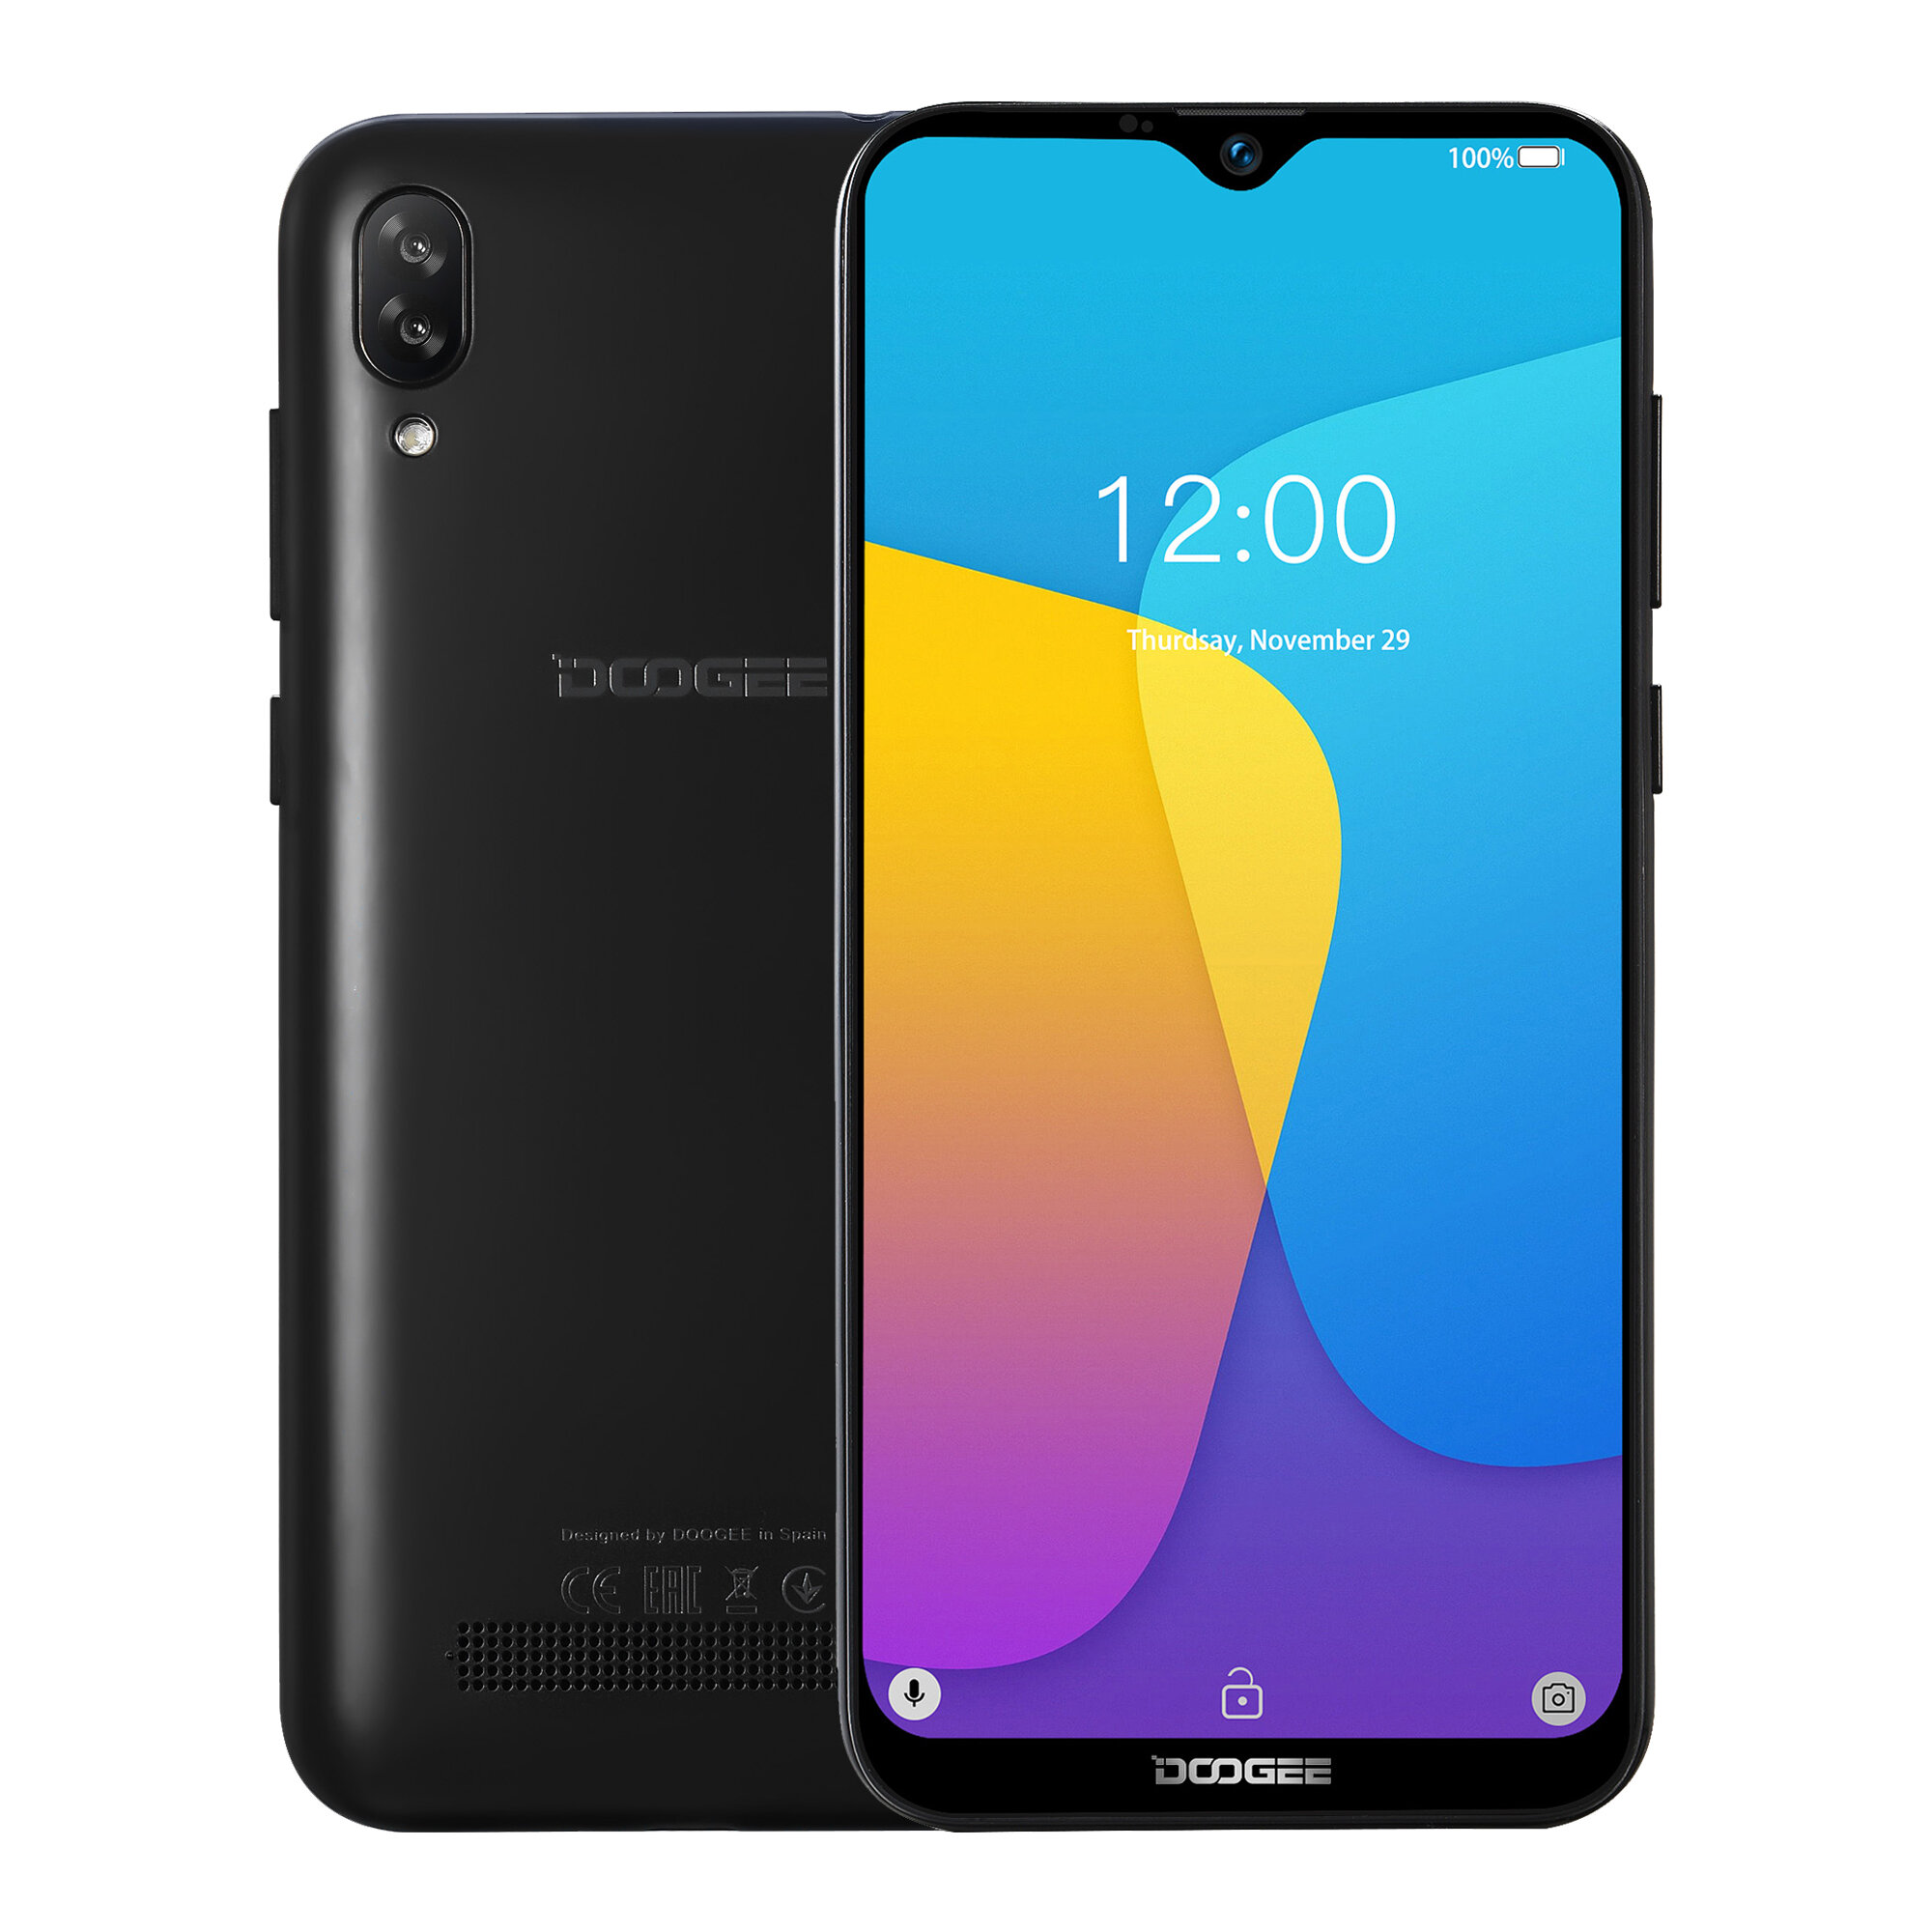 DOOGEE N20 6.3 inch FHD+ Android 9.0 4350mAh Triple Rear Cameras 16MP Front Camera 4GB 64GB Helio P23 4G Smartphone - 1